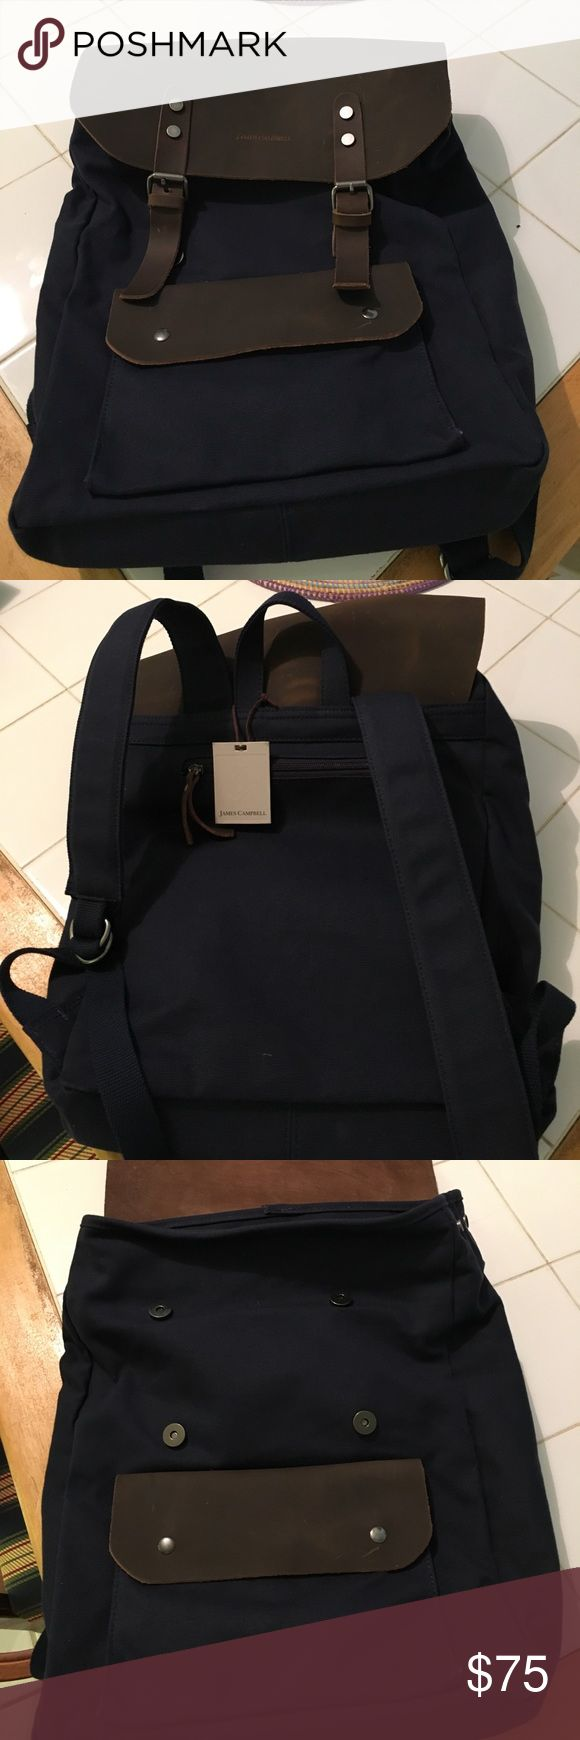 """James Campbell backpack Navy canvas w brown leather flap and pocket. Padded shoulder straps, two zip pockets inside. Adj sides and flap. NWT. Slight marks on leather as seen in pics. 18"""" h 14"""" w 5"""" d James Campbell Bags Backpacks"""